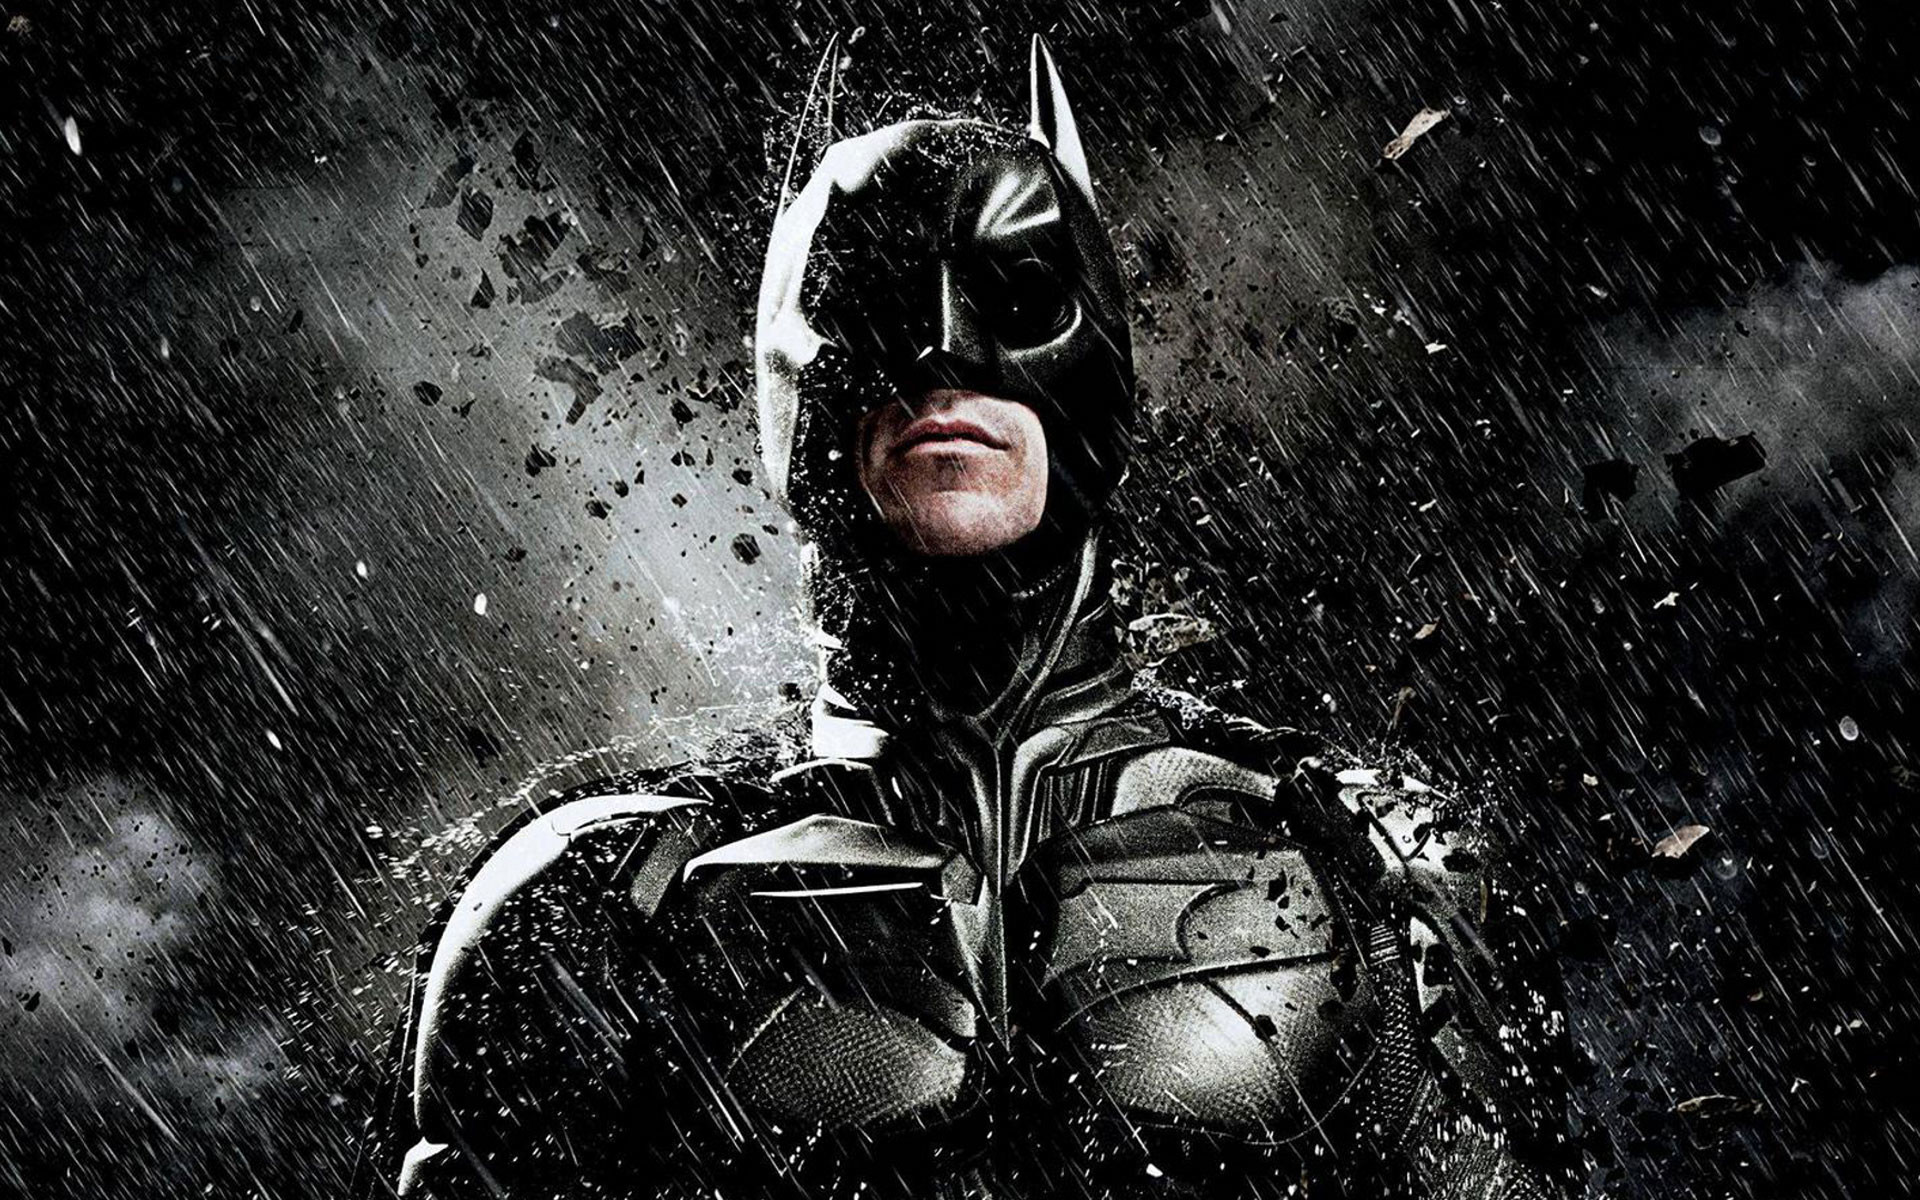 the dark knight rises wallpaper 1920x1080 80 images